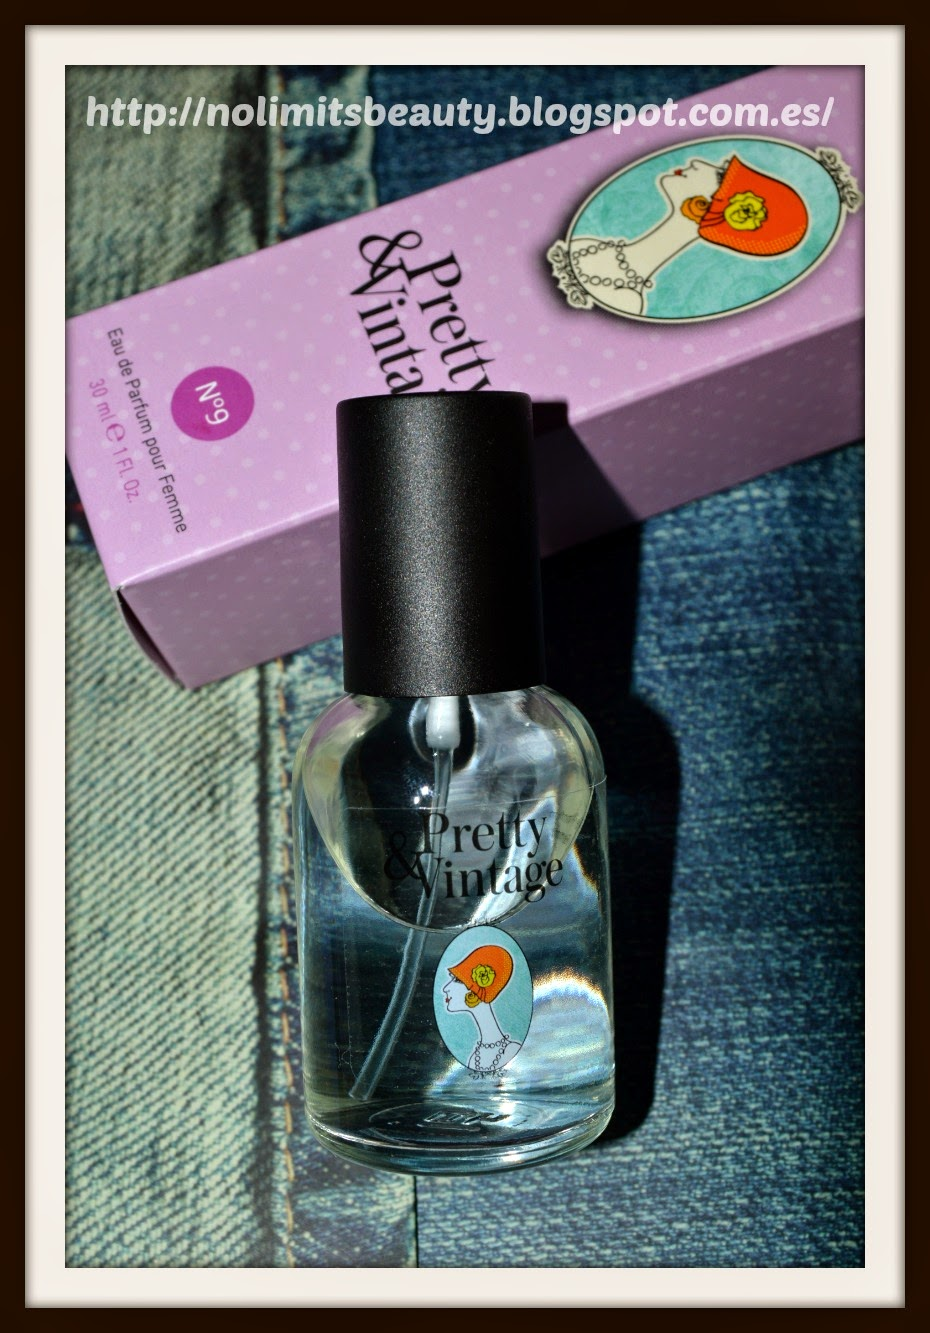 Perfumes Low Cost: Pretty & Vintage nº 9 (Light Blue de Dolce & Gabanna)